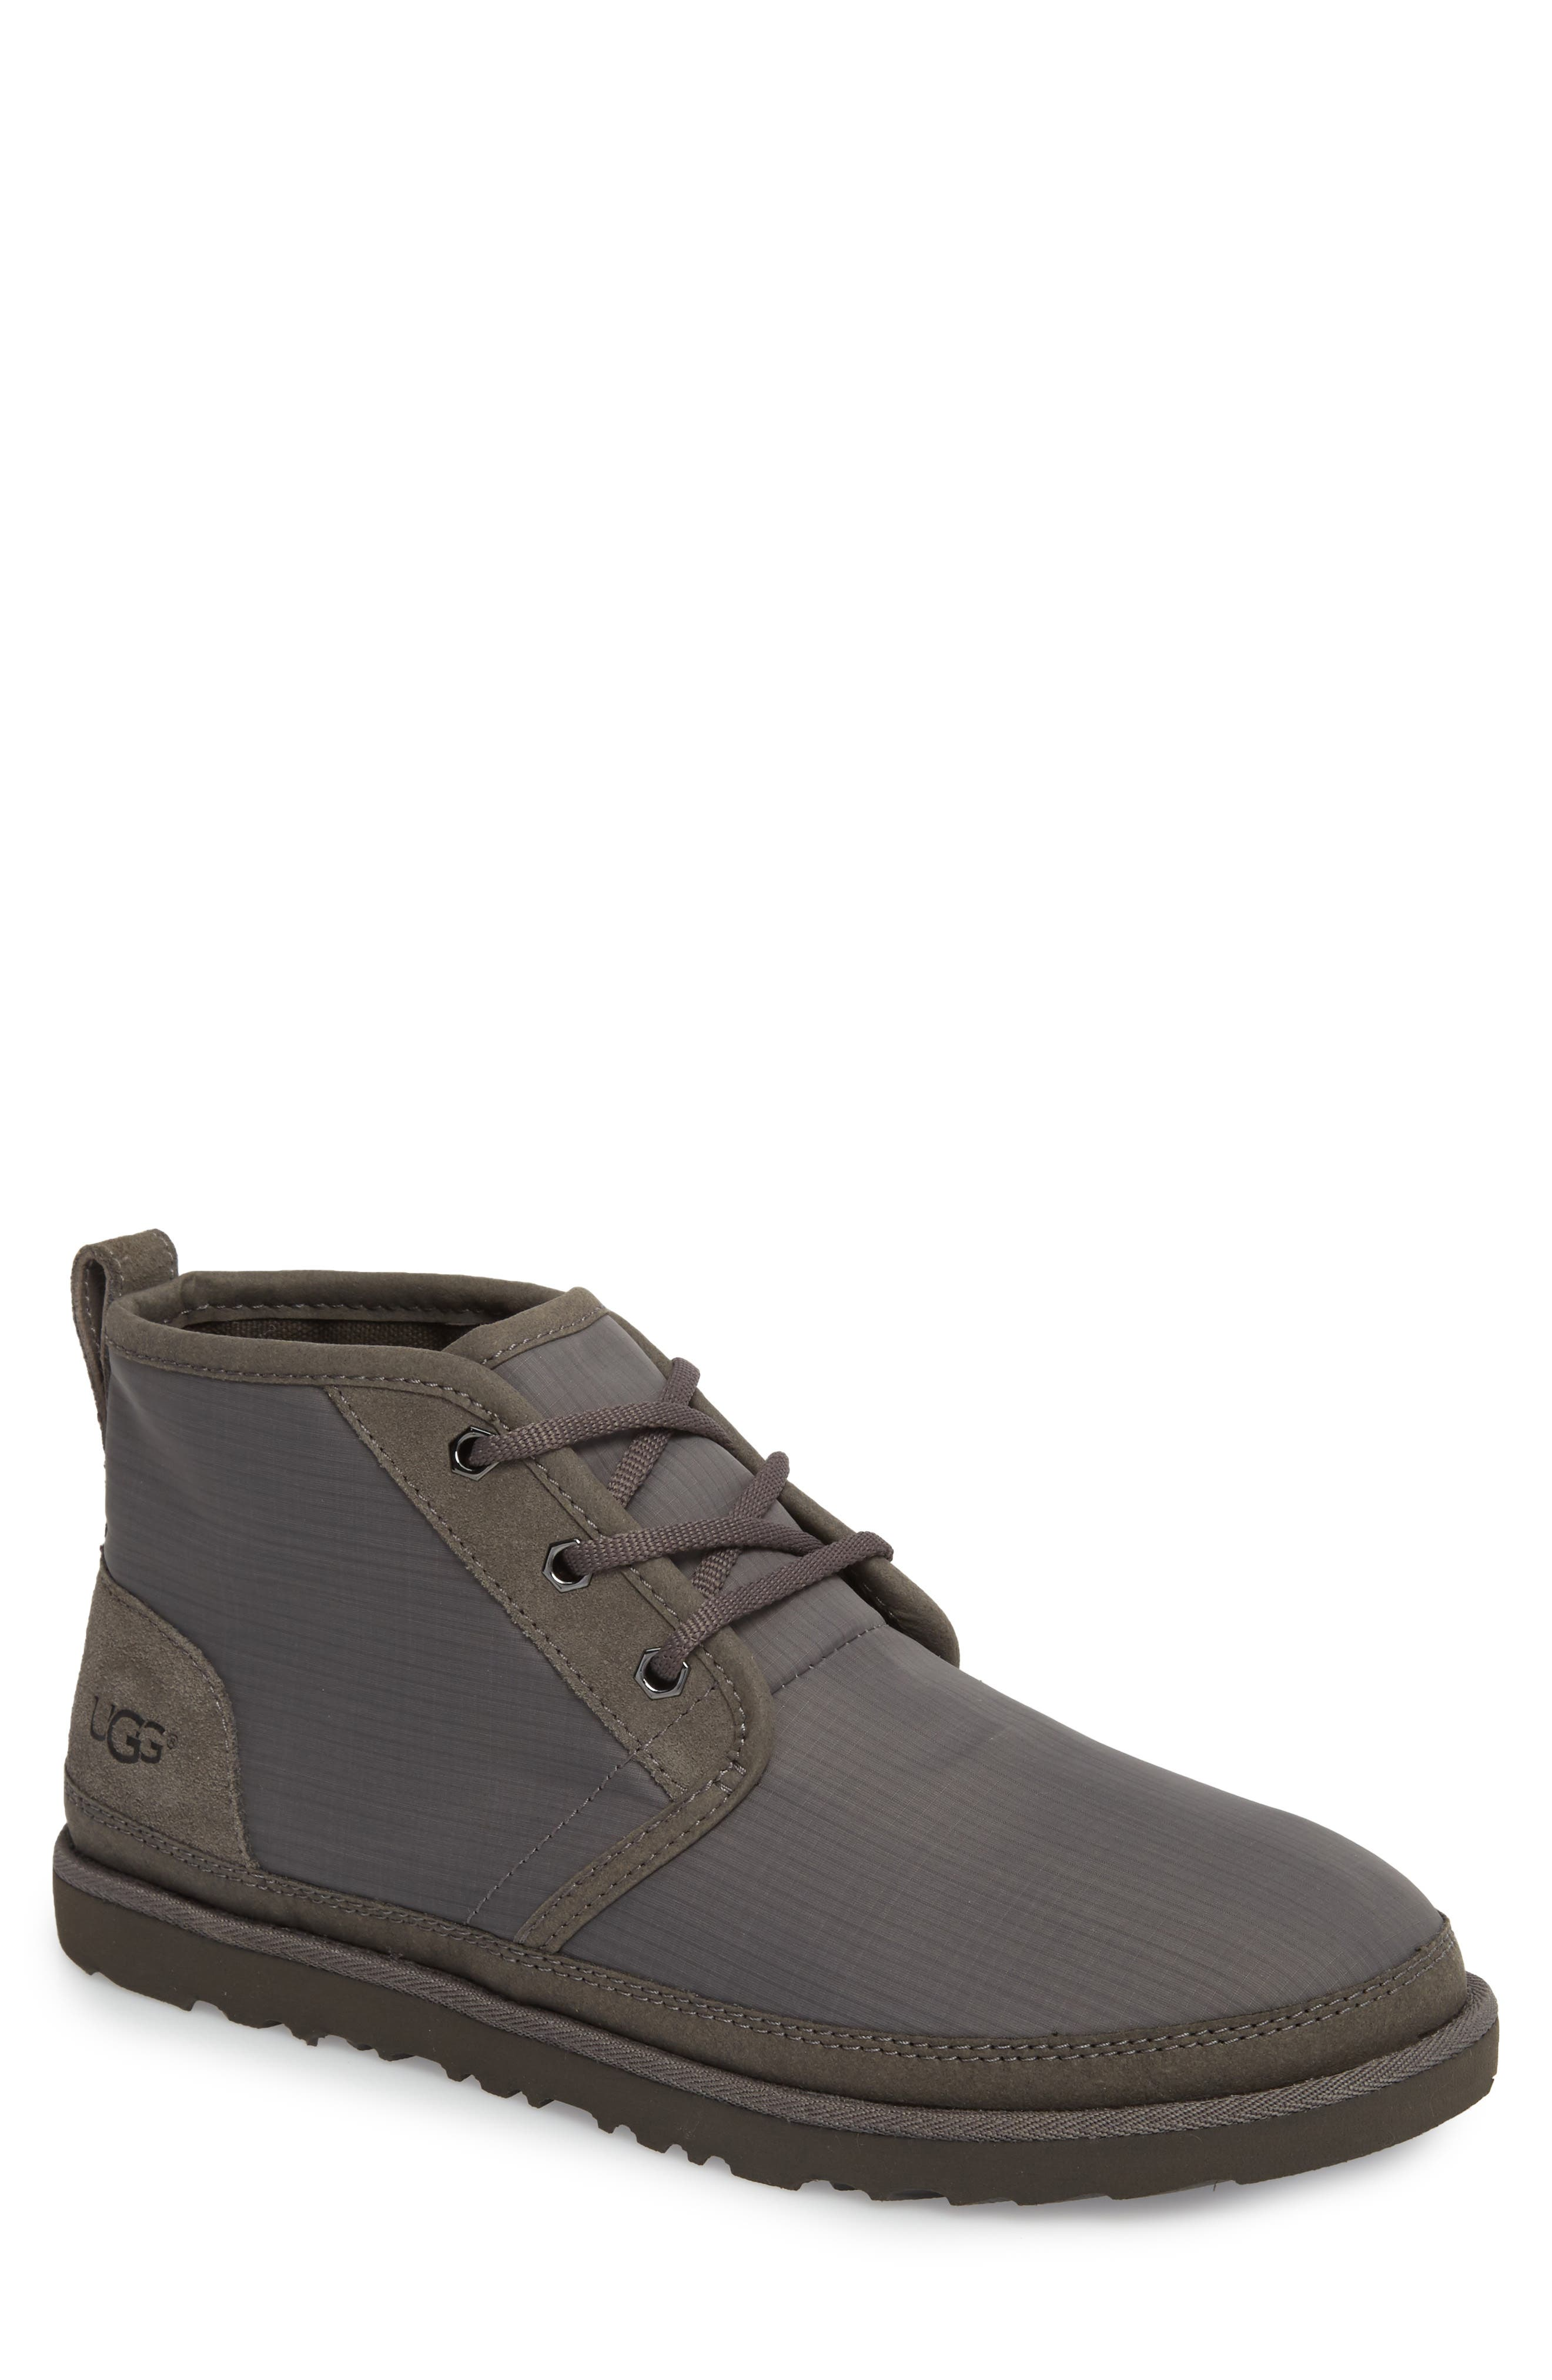 Neumel Ripstop Chukka Boot,                         Main,                         color, CHARCOAL LEATHER